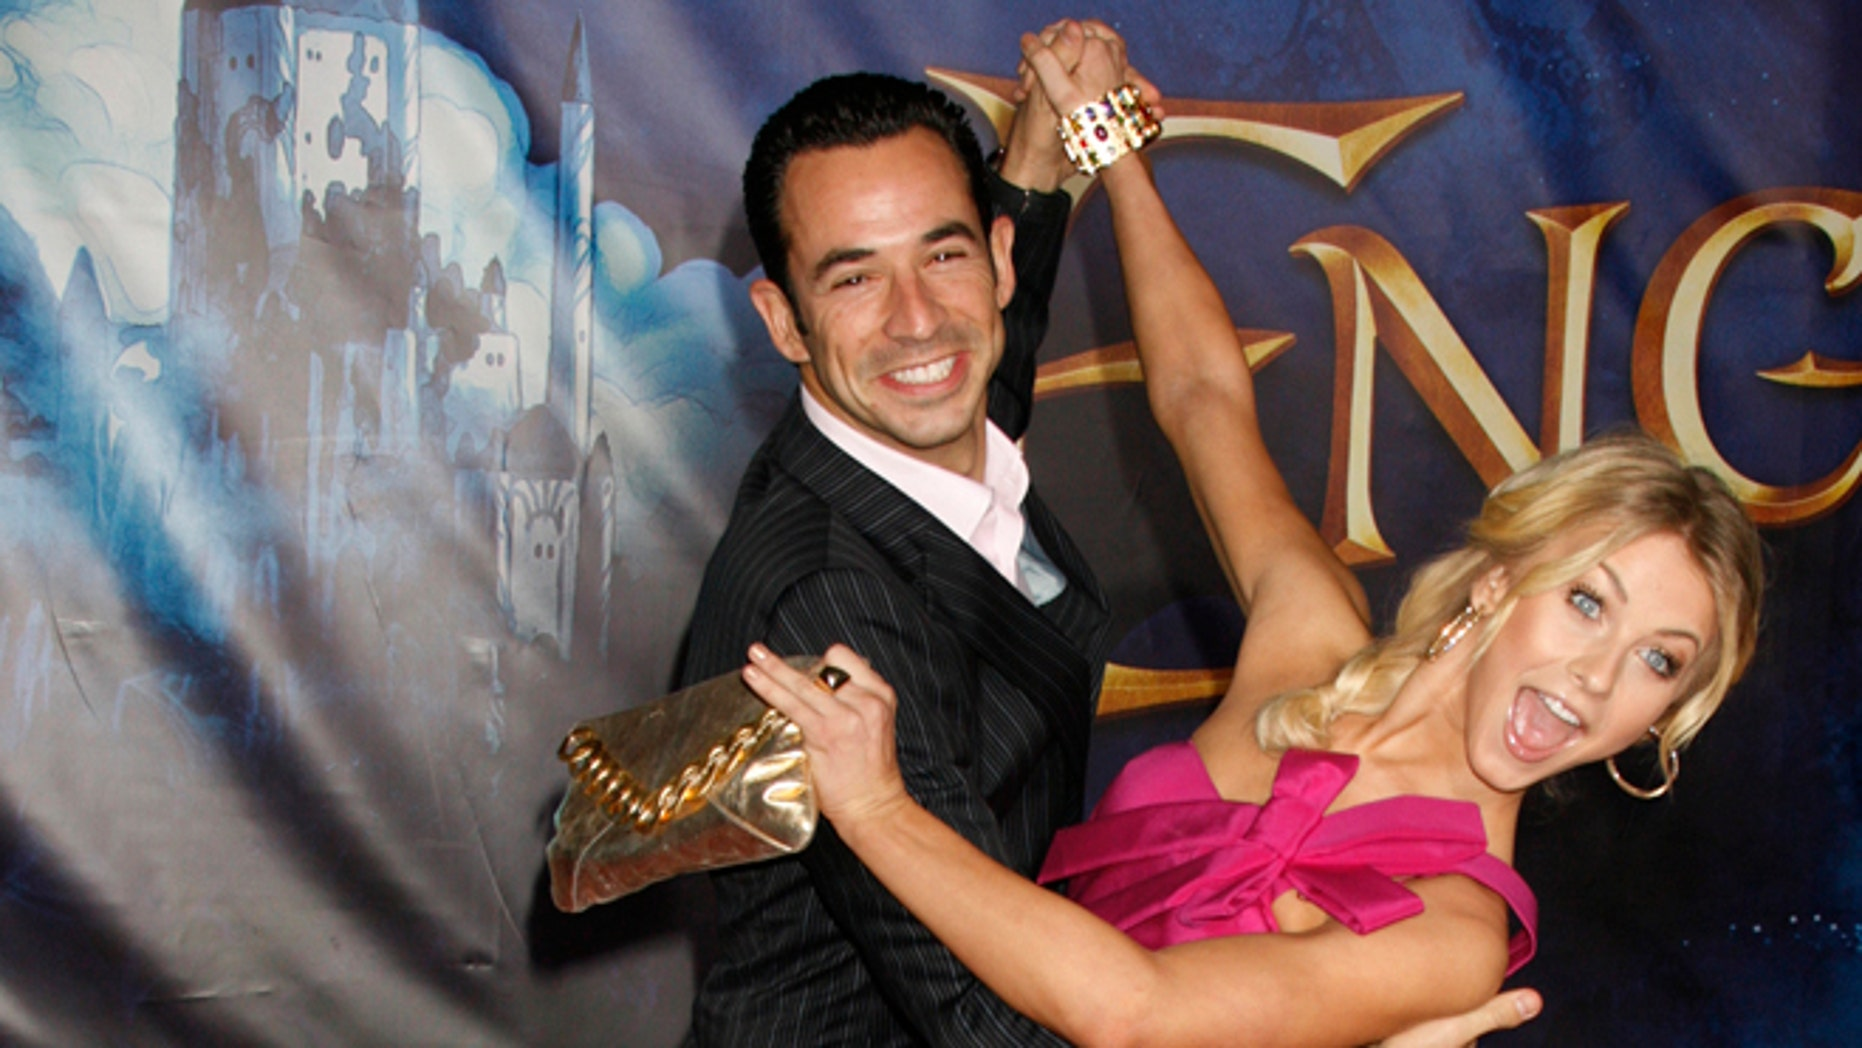 """""""Dancing with the Stars"""" television reality show contestants Brazilian race car driver Helio Castroneves (L) and professional dancer Julianne Hough strike a dance pose as they arrive for the premiere of the film """"Enchanted"""" in Hollywood, California November 17, 2007."""